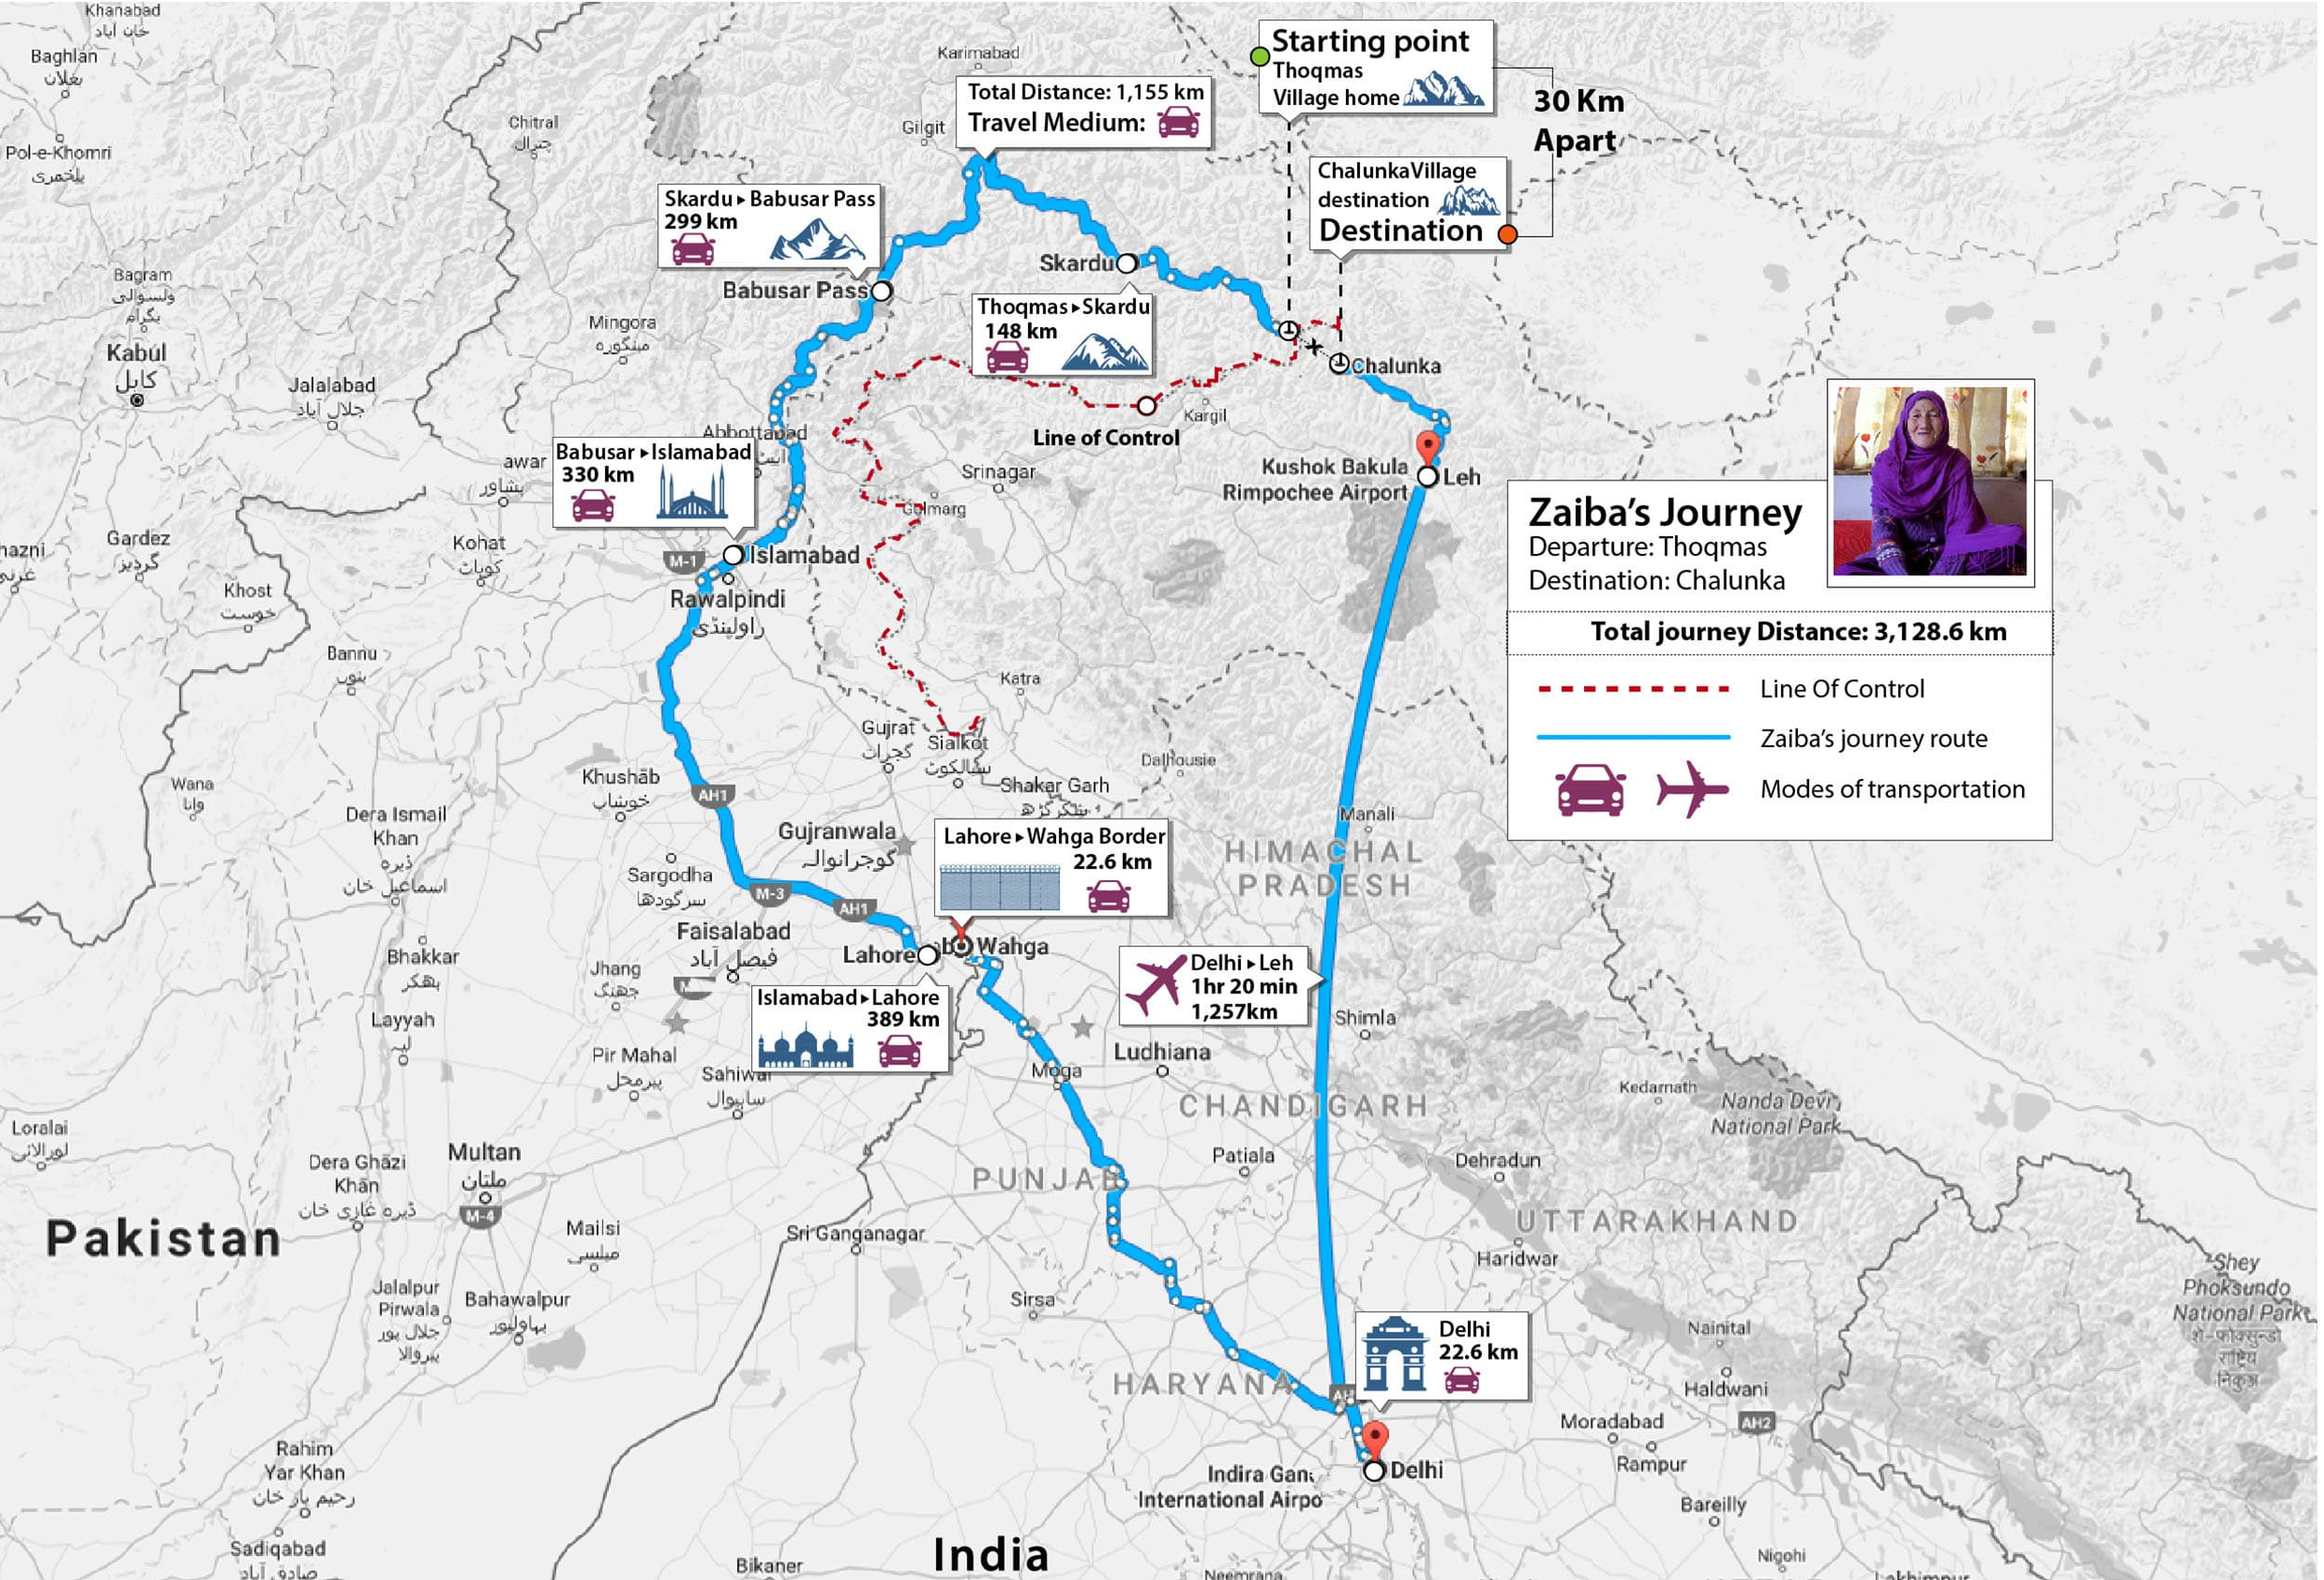 A map of Zaiba's journey from Thoqmus to Chalunka